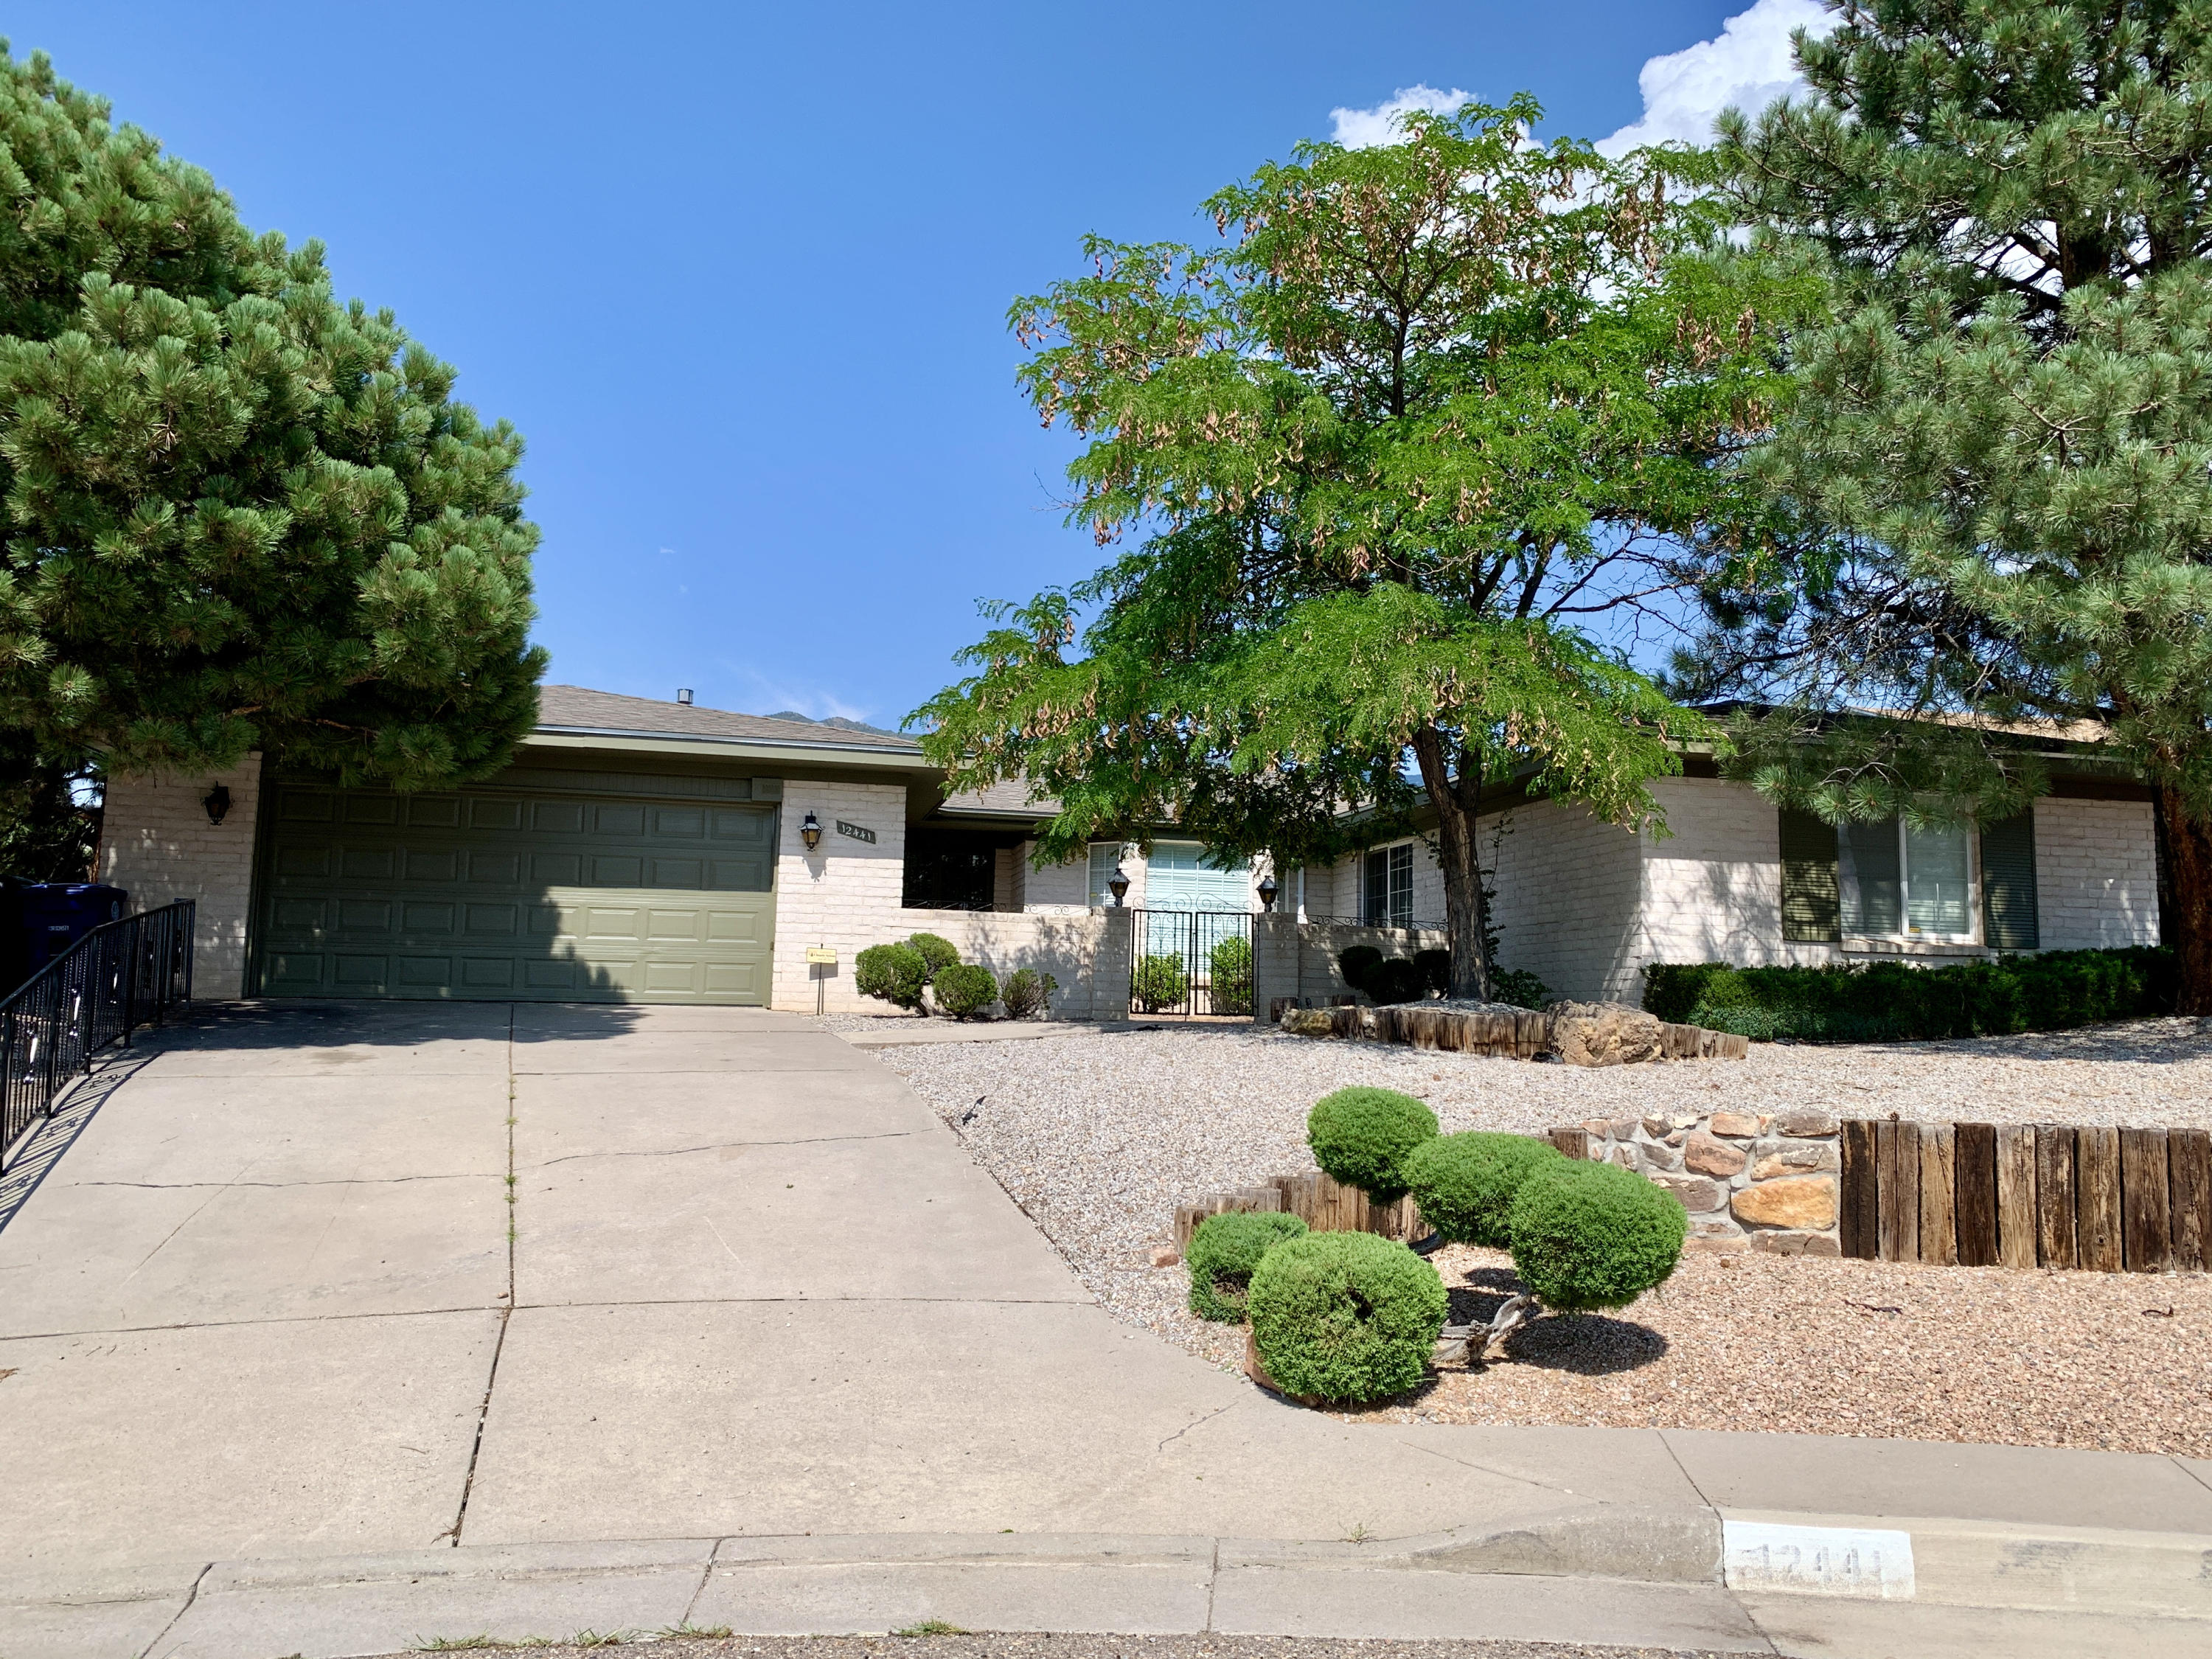 Spacious 4 bedroom, 4 bath single story home with wonderful floorplan located on a quiet cul-de-sac lot. Gorgeous kitchen with granite countertops. Lovely condition w/  hard surface flooring throughout - NO CARPET. Mountain views, mature landscaping, low water use and easily maintained xeriscaped front/back yards. Updated with refrigerated air, newer appliances, newer toilets.